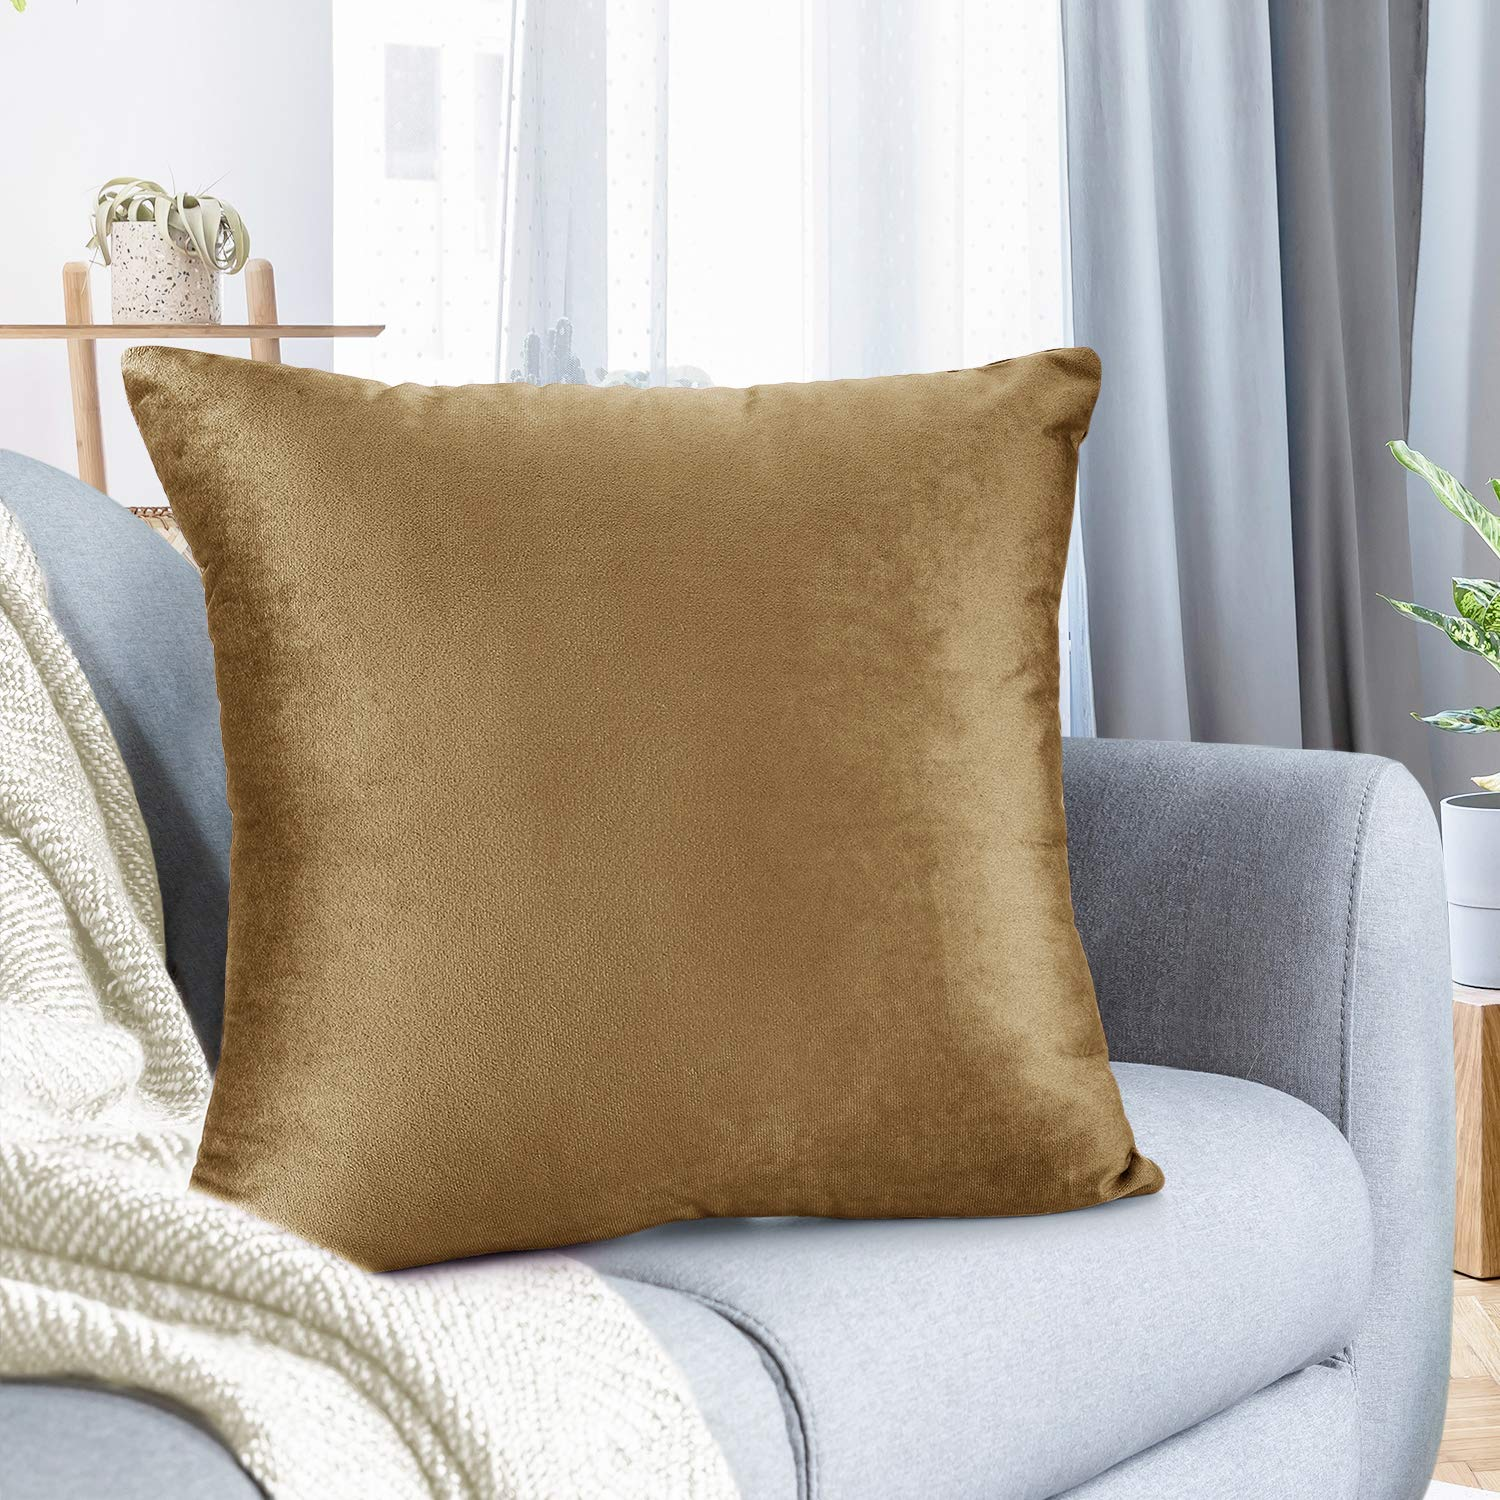 """Nestl Bedding Throw Pillow Cover 22"""" x 22"""" Soft Square Decorative Throw Pillow Covers Cozy Velvet Cushion Case for Sofa Couch Bedroom - Mocha Light Brown"""